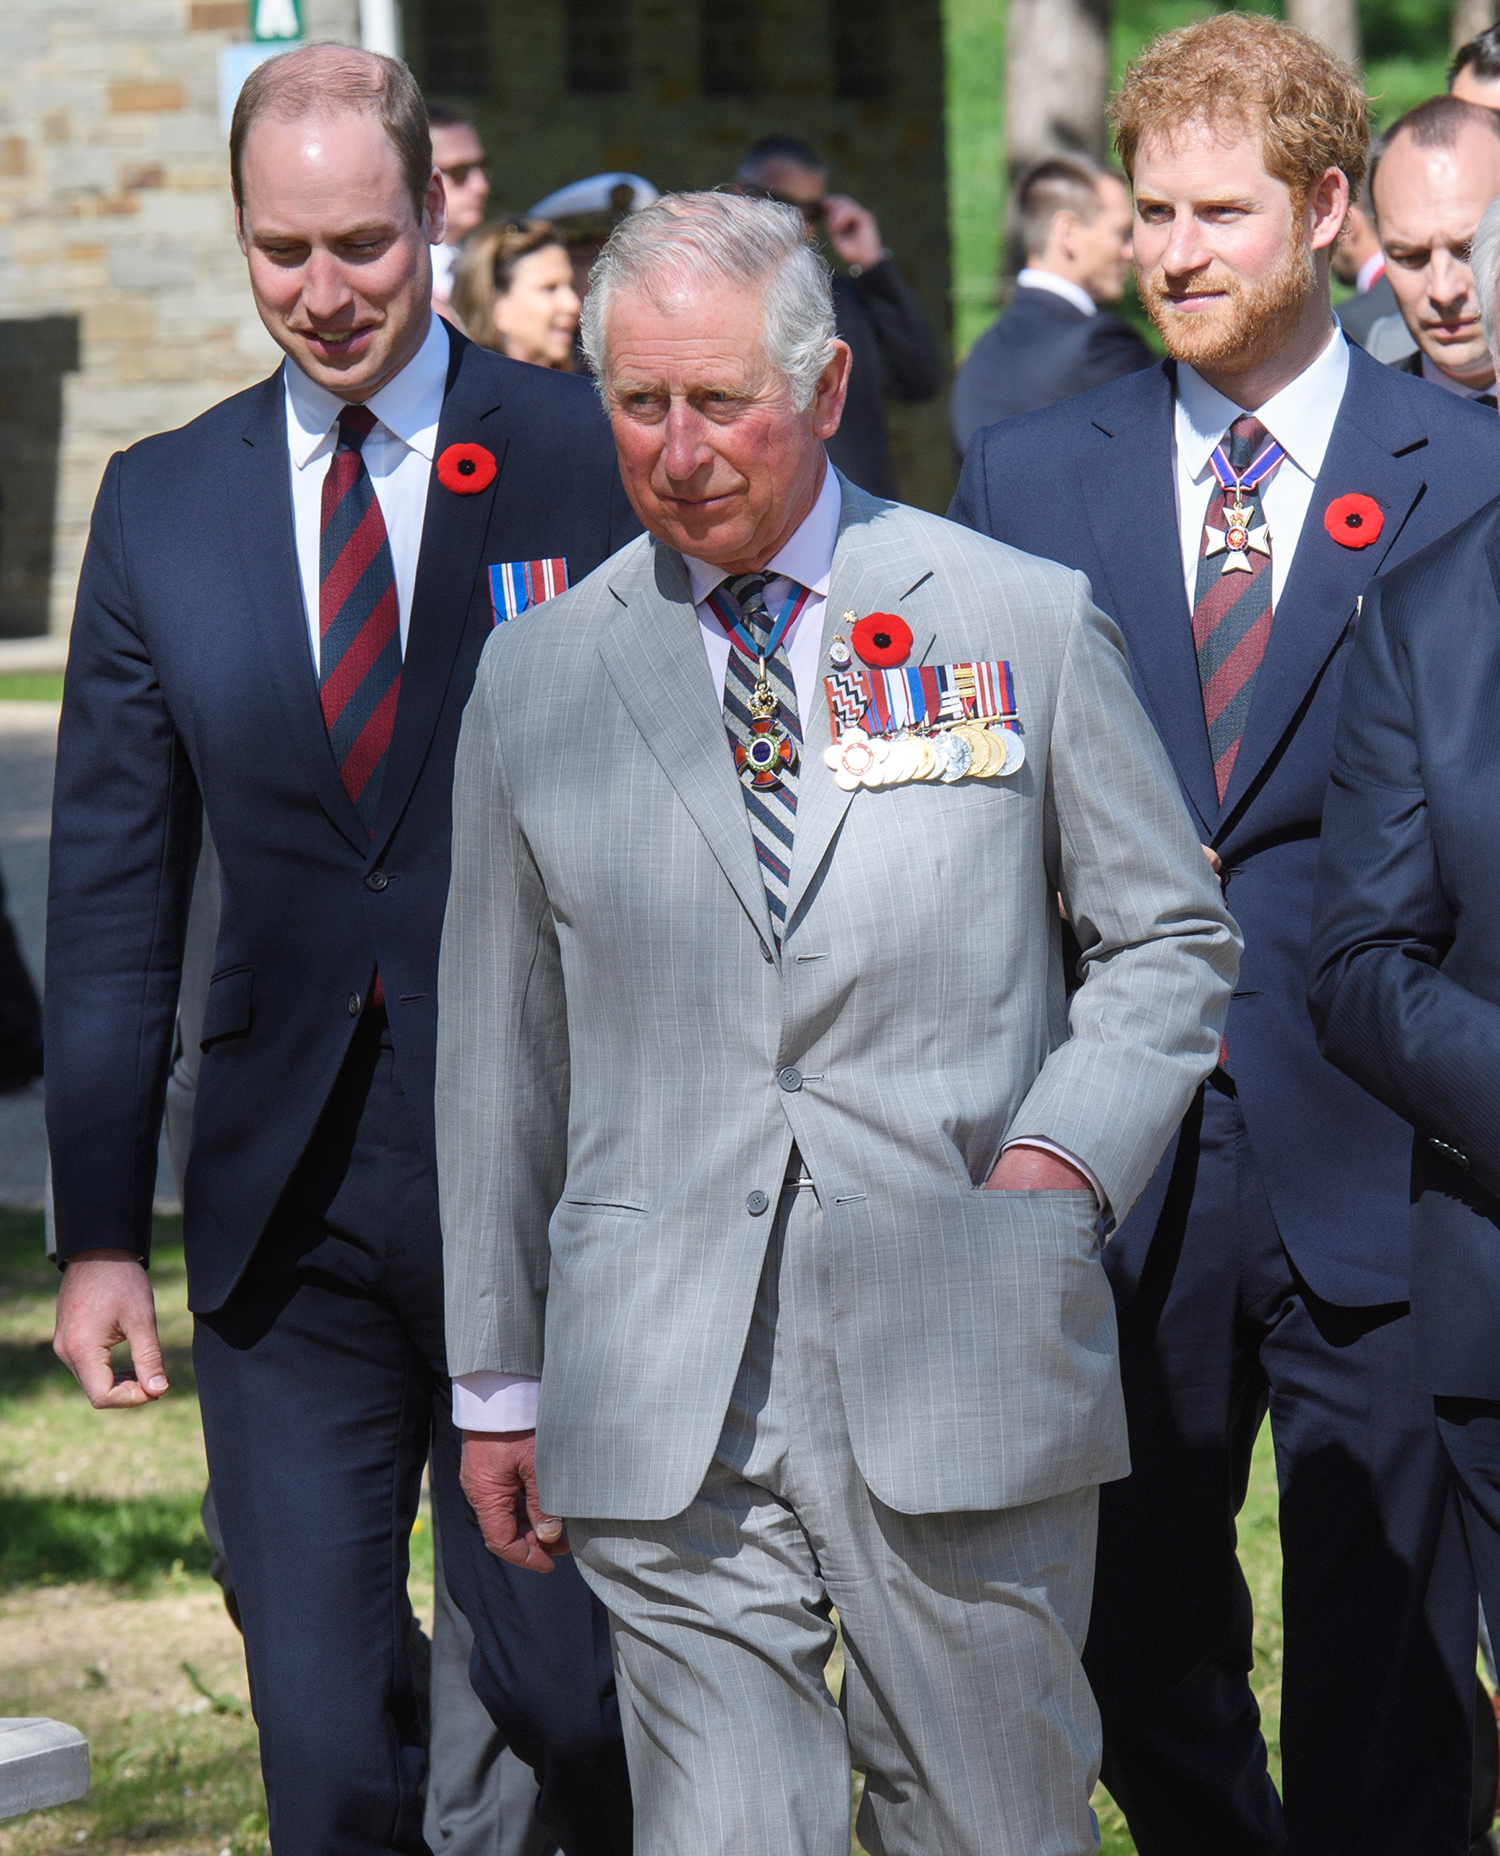 Prince Charles, Prince of Wales, Prince William, Duke of Cambridge and Prince Harry